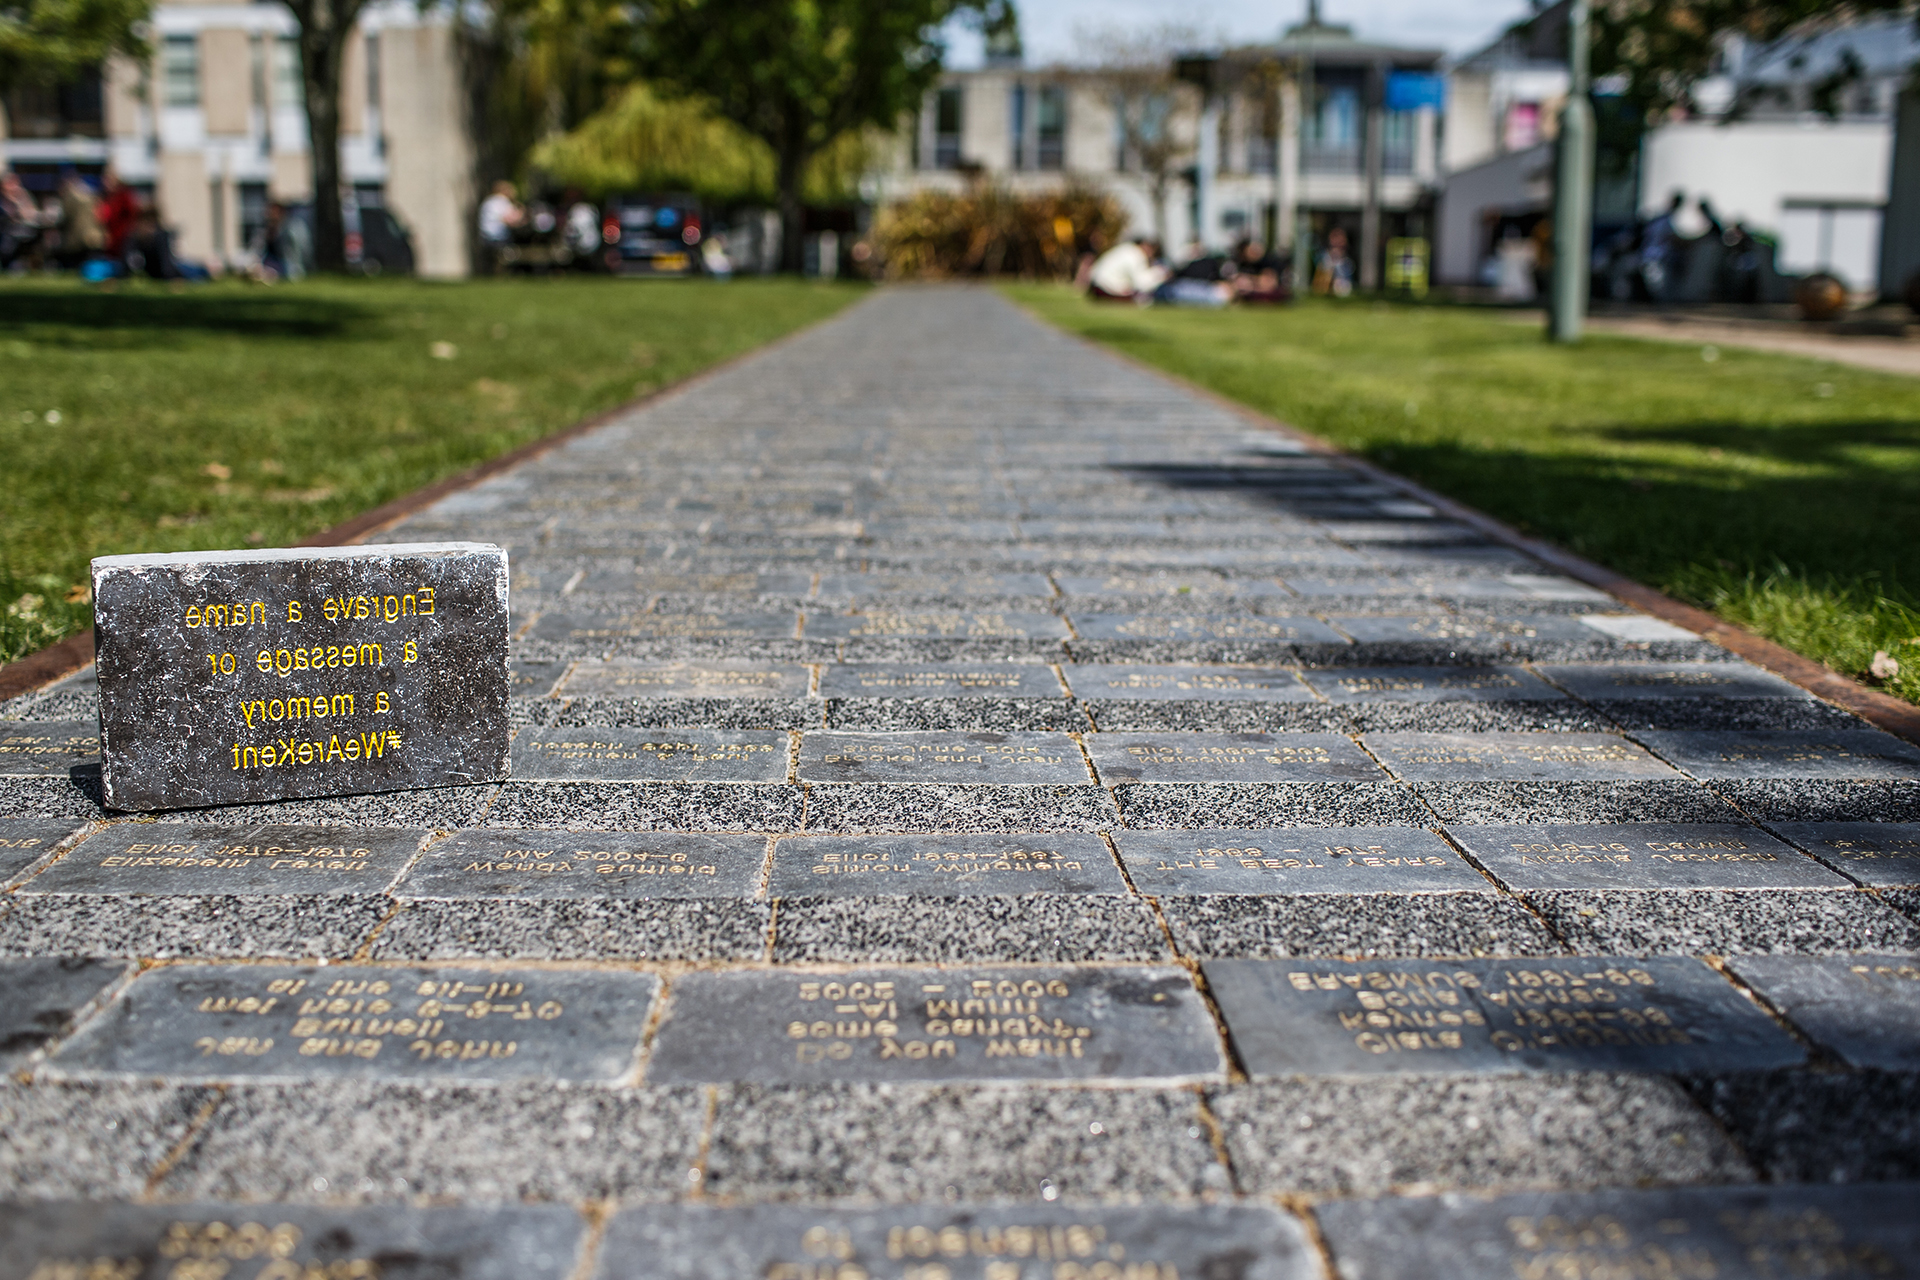 A footsteps brick on the path reading 'Engrave a name a message or a memory #WeAreKent'